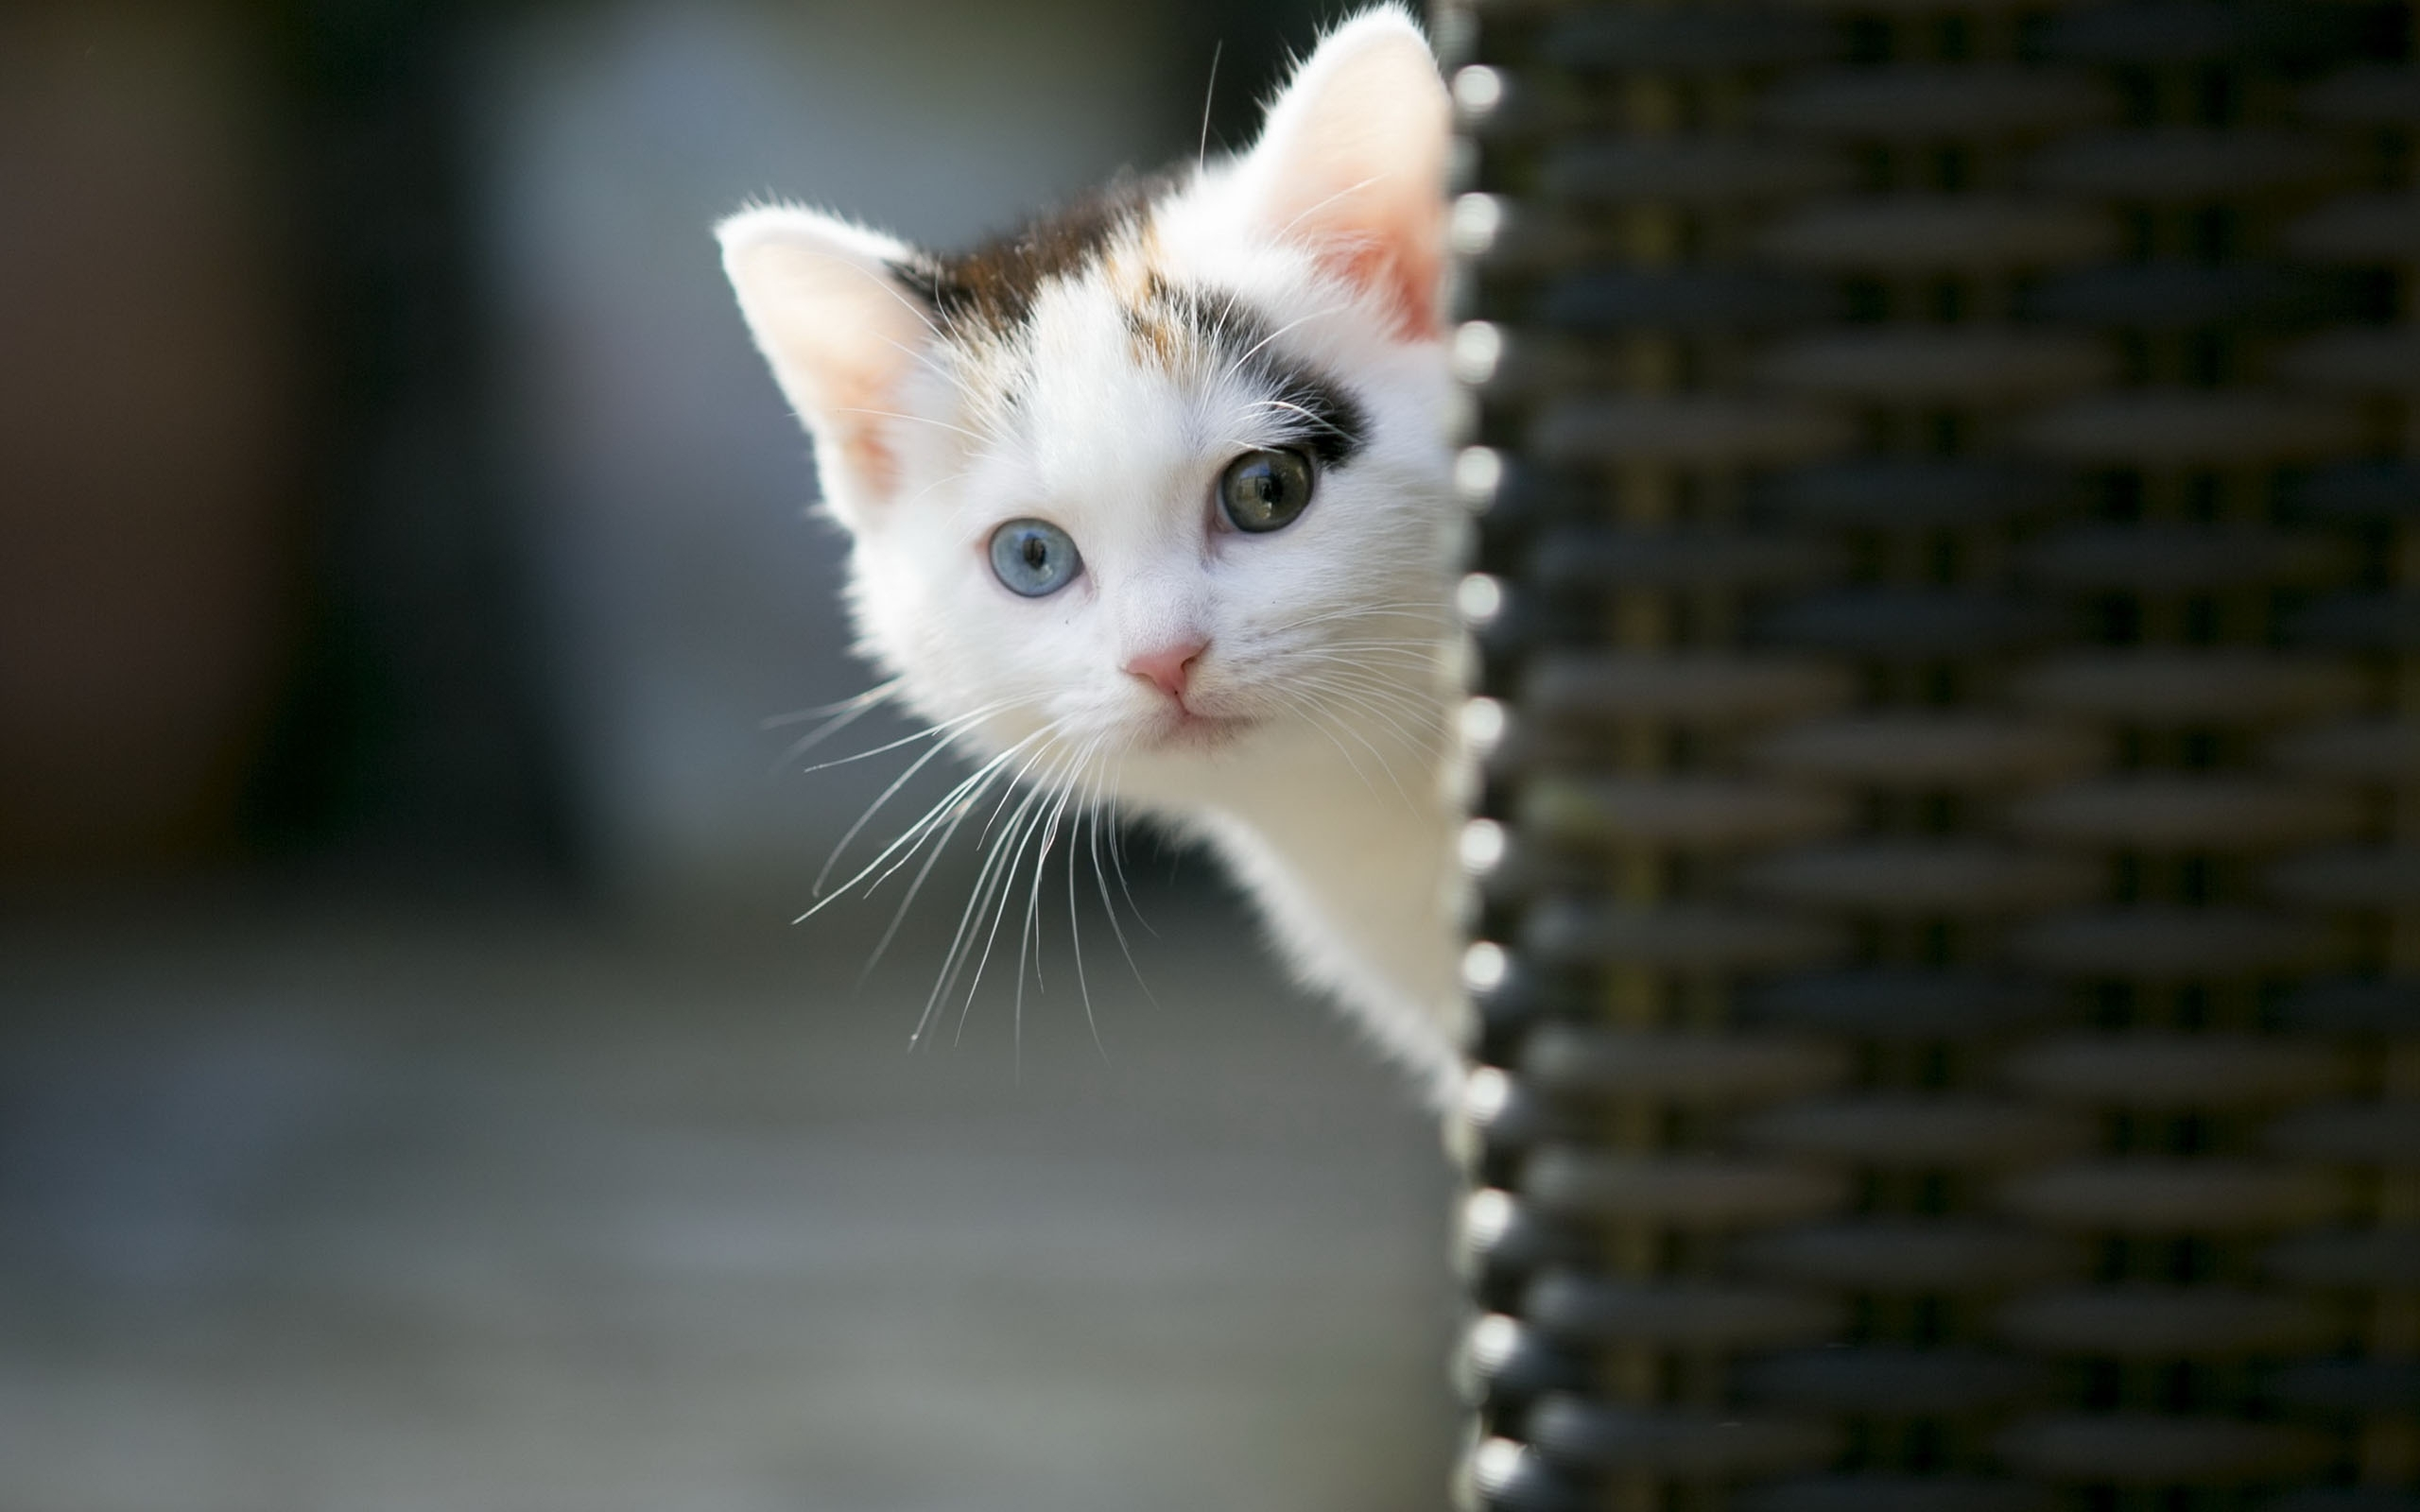 Title Animals Wallpaper Cute Cat Wallpapers Images For Hd Dimension 2560 X 1600 File Type JPG JPEG